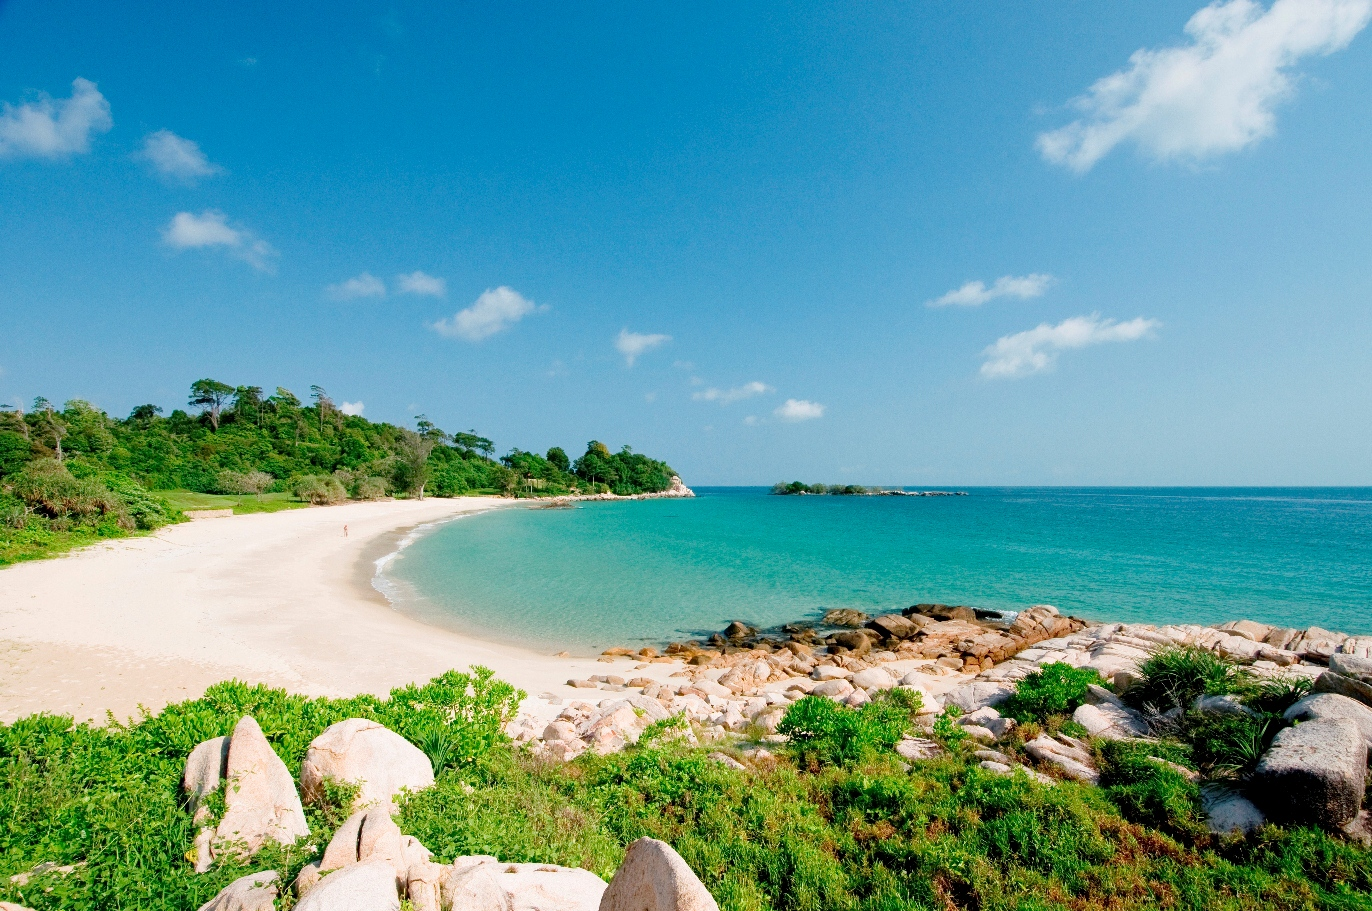 The Beauty of Bintan Island, Riau Archipelago